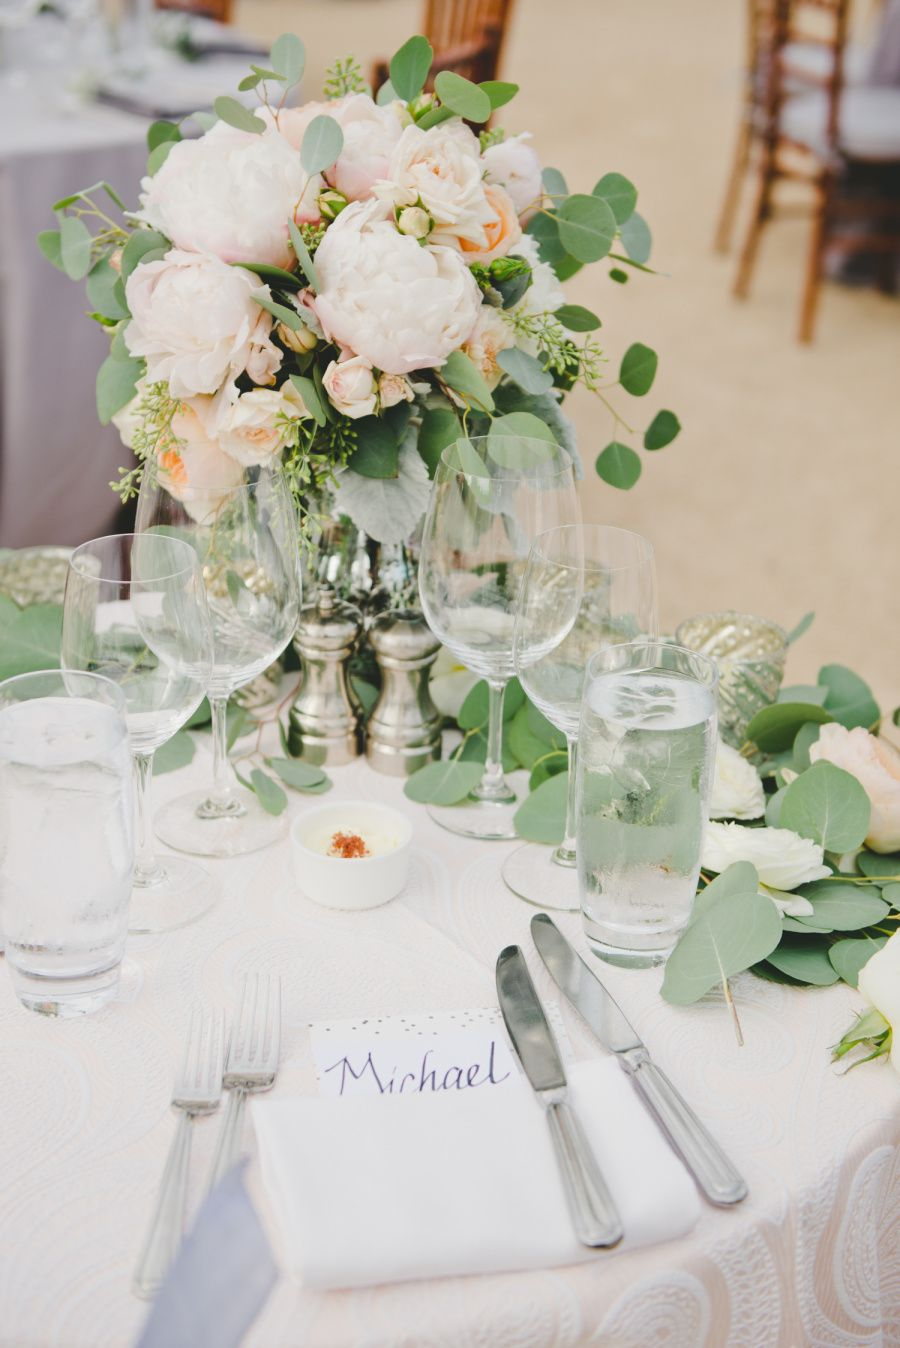 La Tavola Fine Linen Rental: Trouseau Petal | Photography: onelove photography, Coordination: Napa Valley Custom Events, Floral Design: Julie Stevens Design